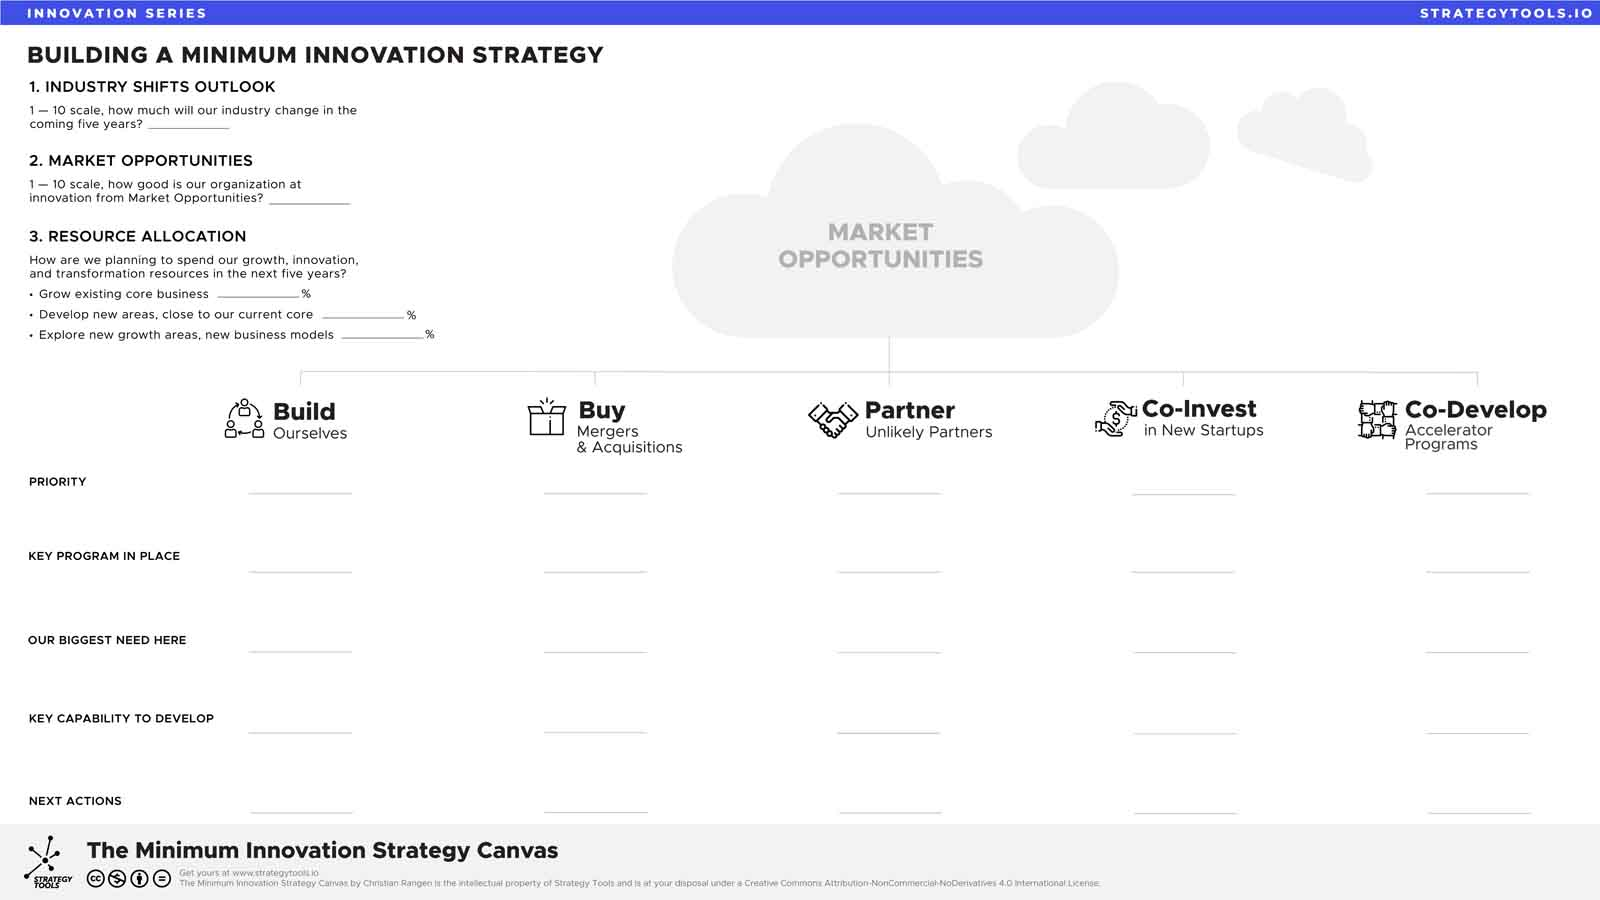 Strategy Tools - Get the Minimum Innovation Strategy Canvas